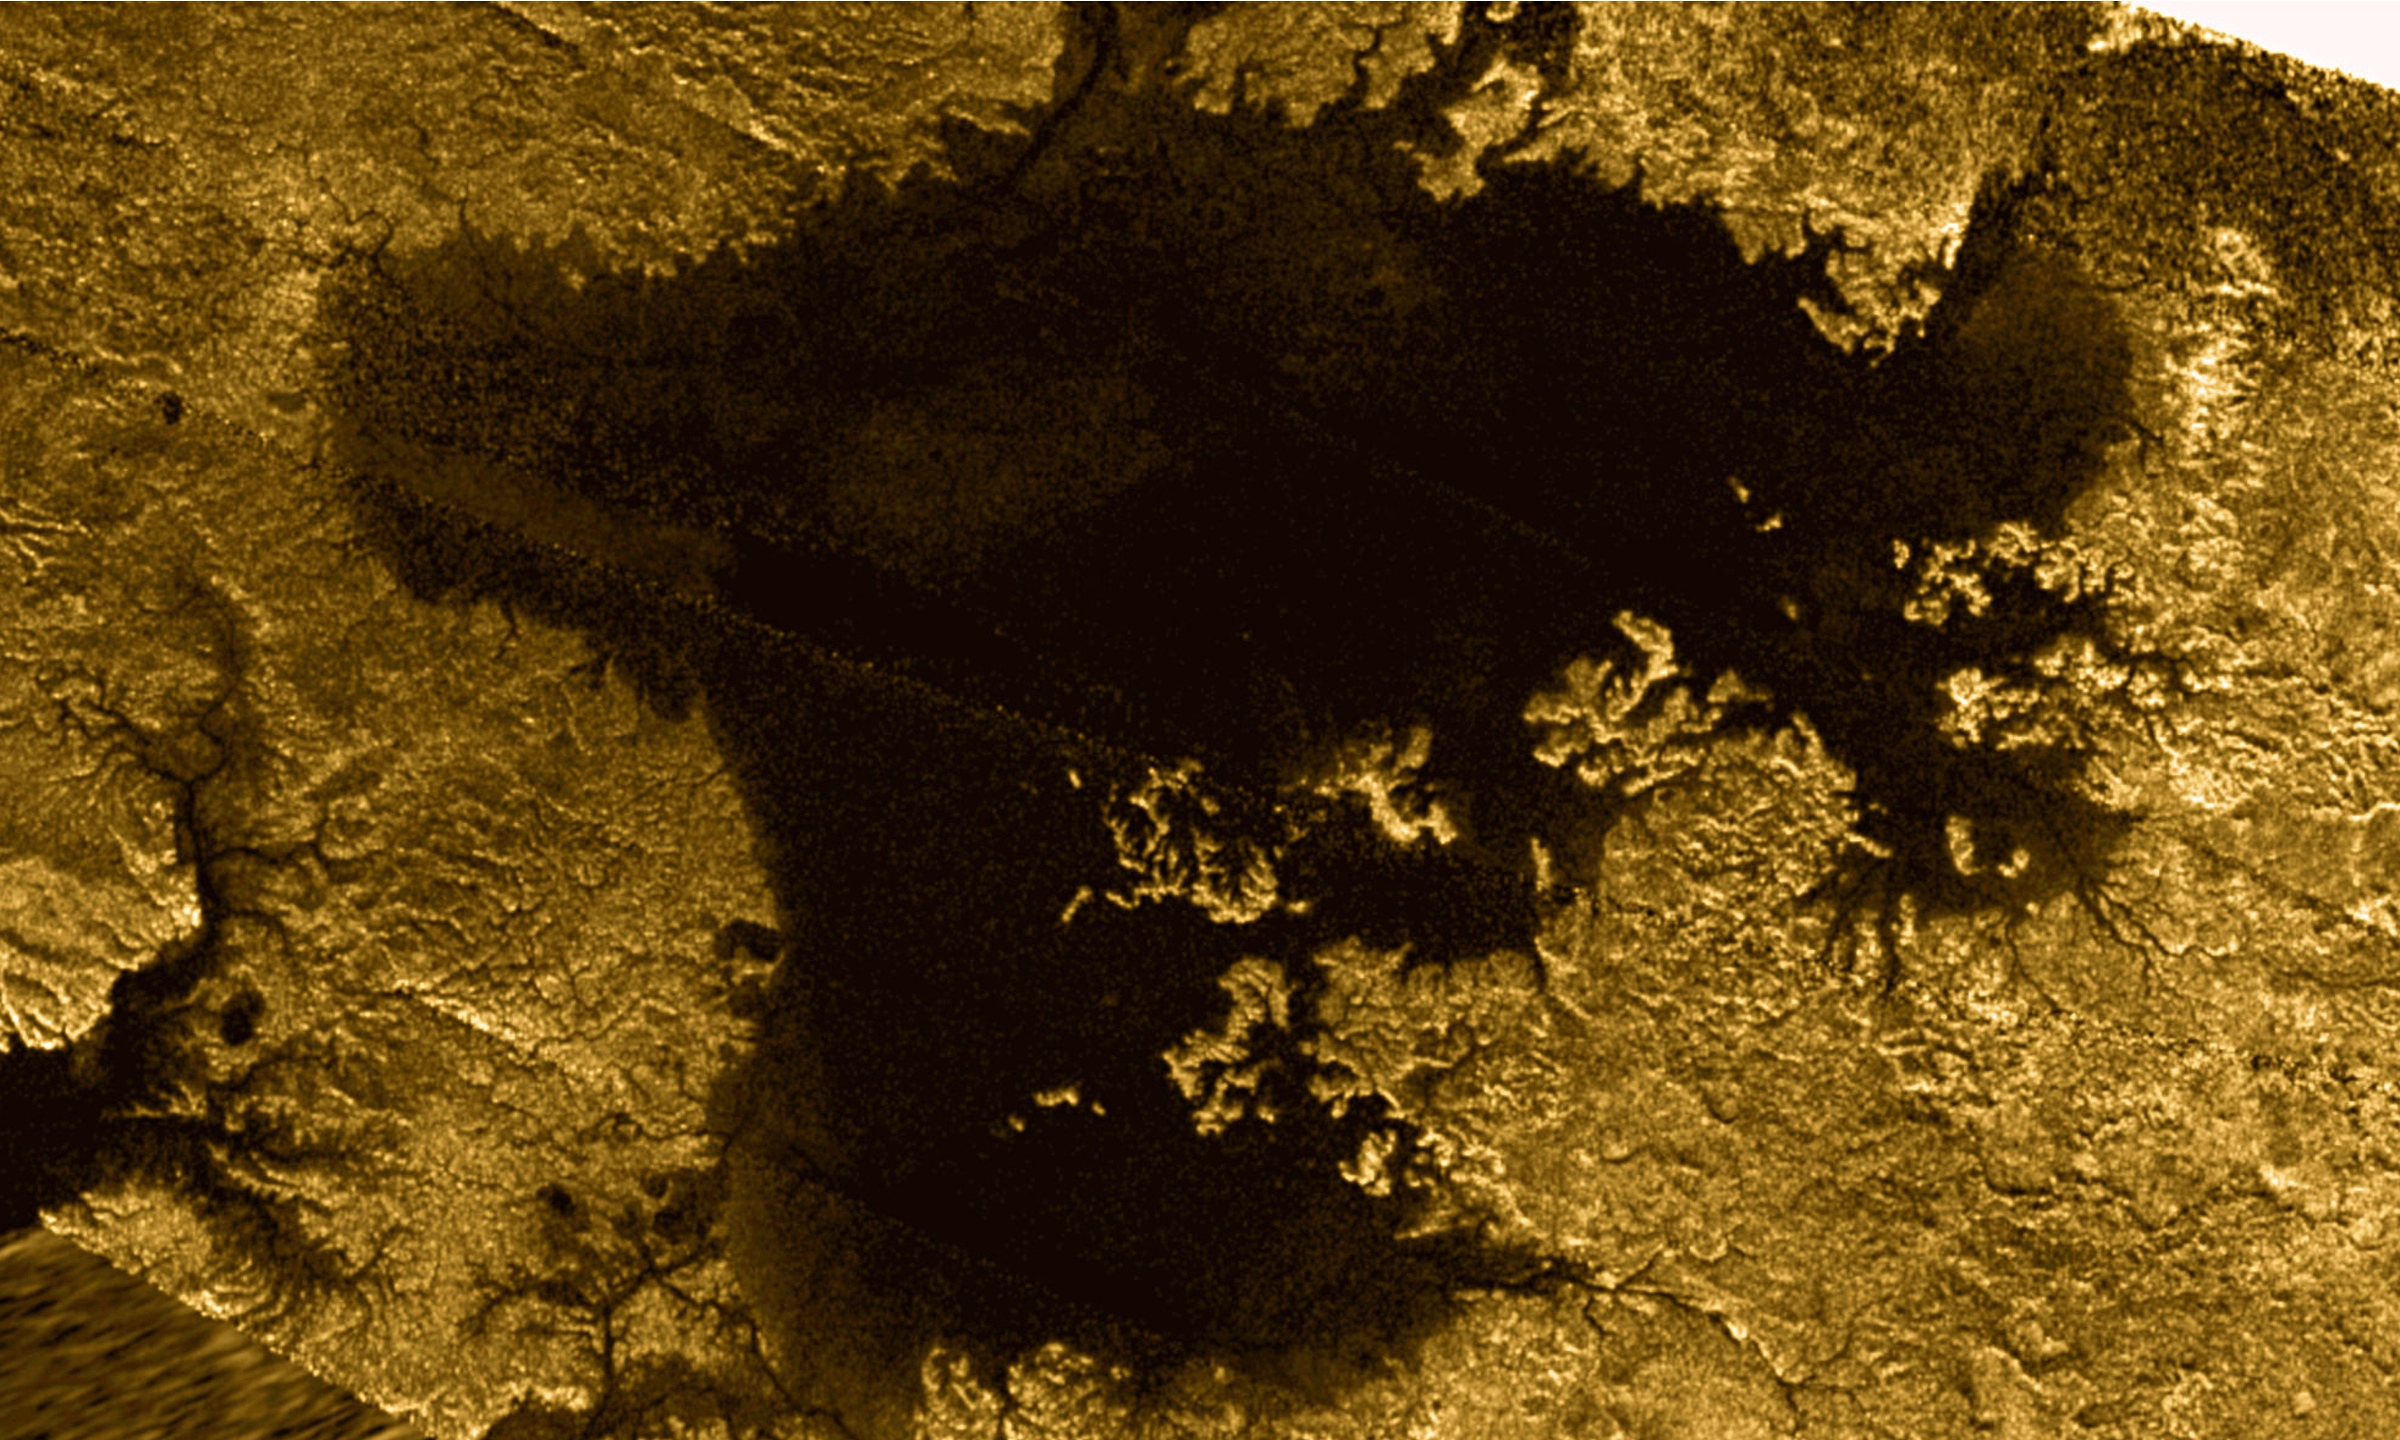 Mystery object in lake on Saturn's moon Titan intrigues scientists